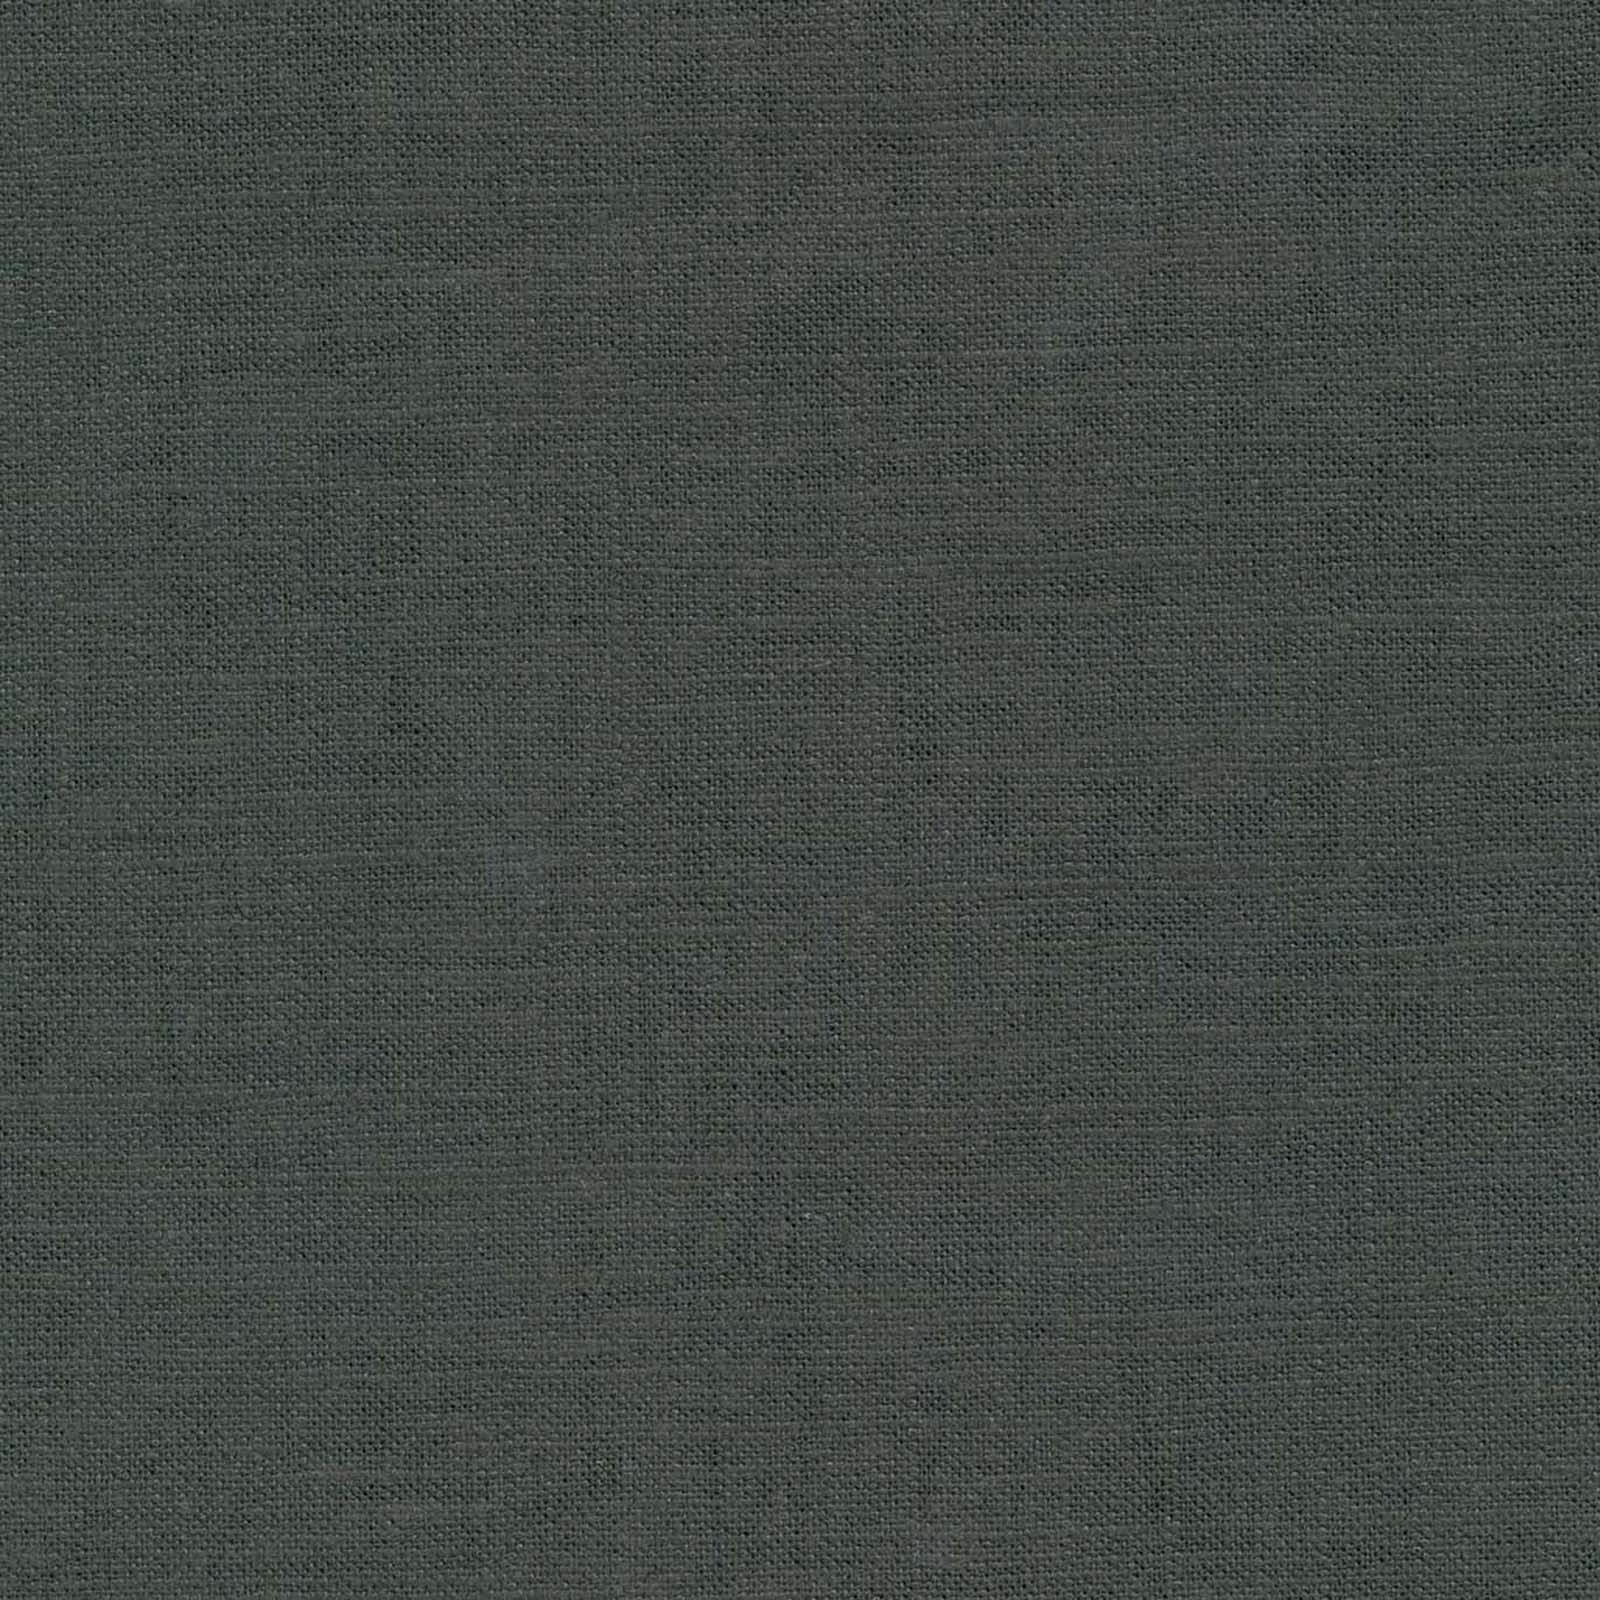 Signature Series Lightweight Decor Linen Fabric 54u0022 Charcoal